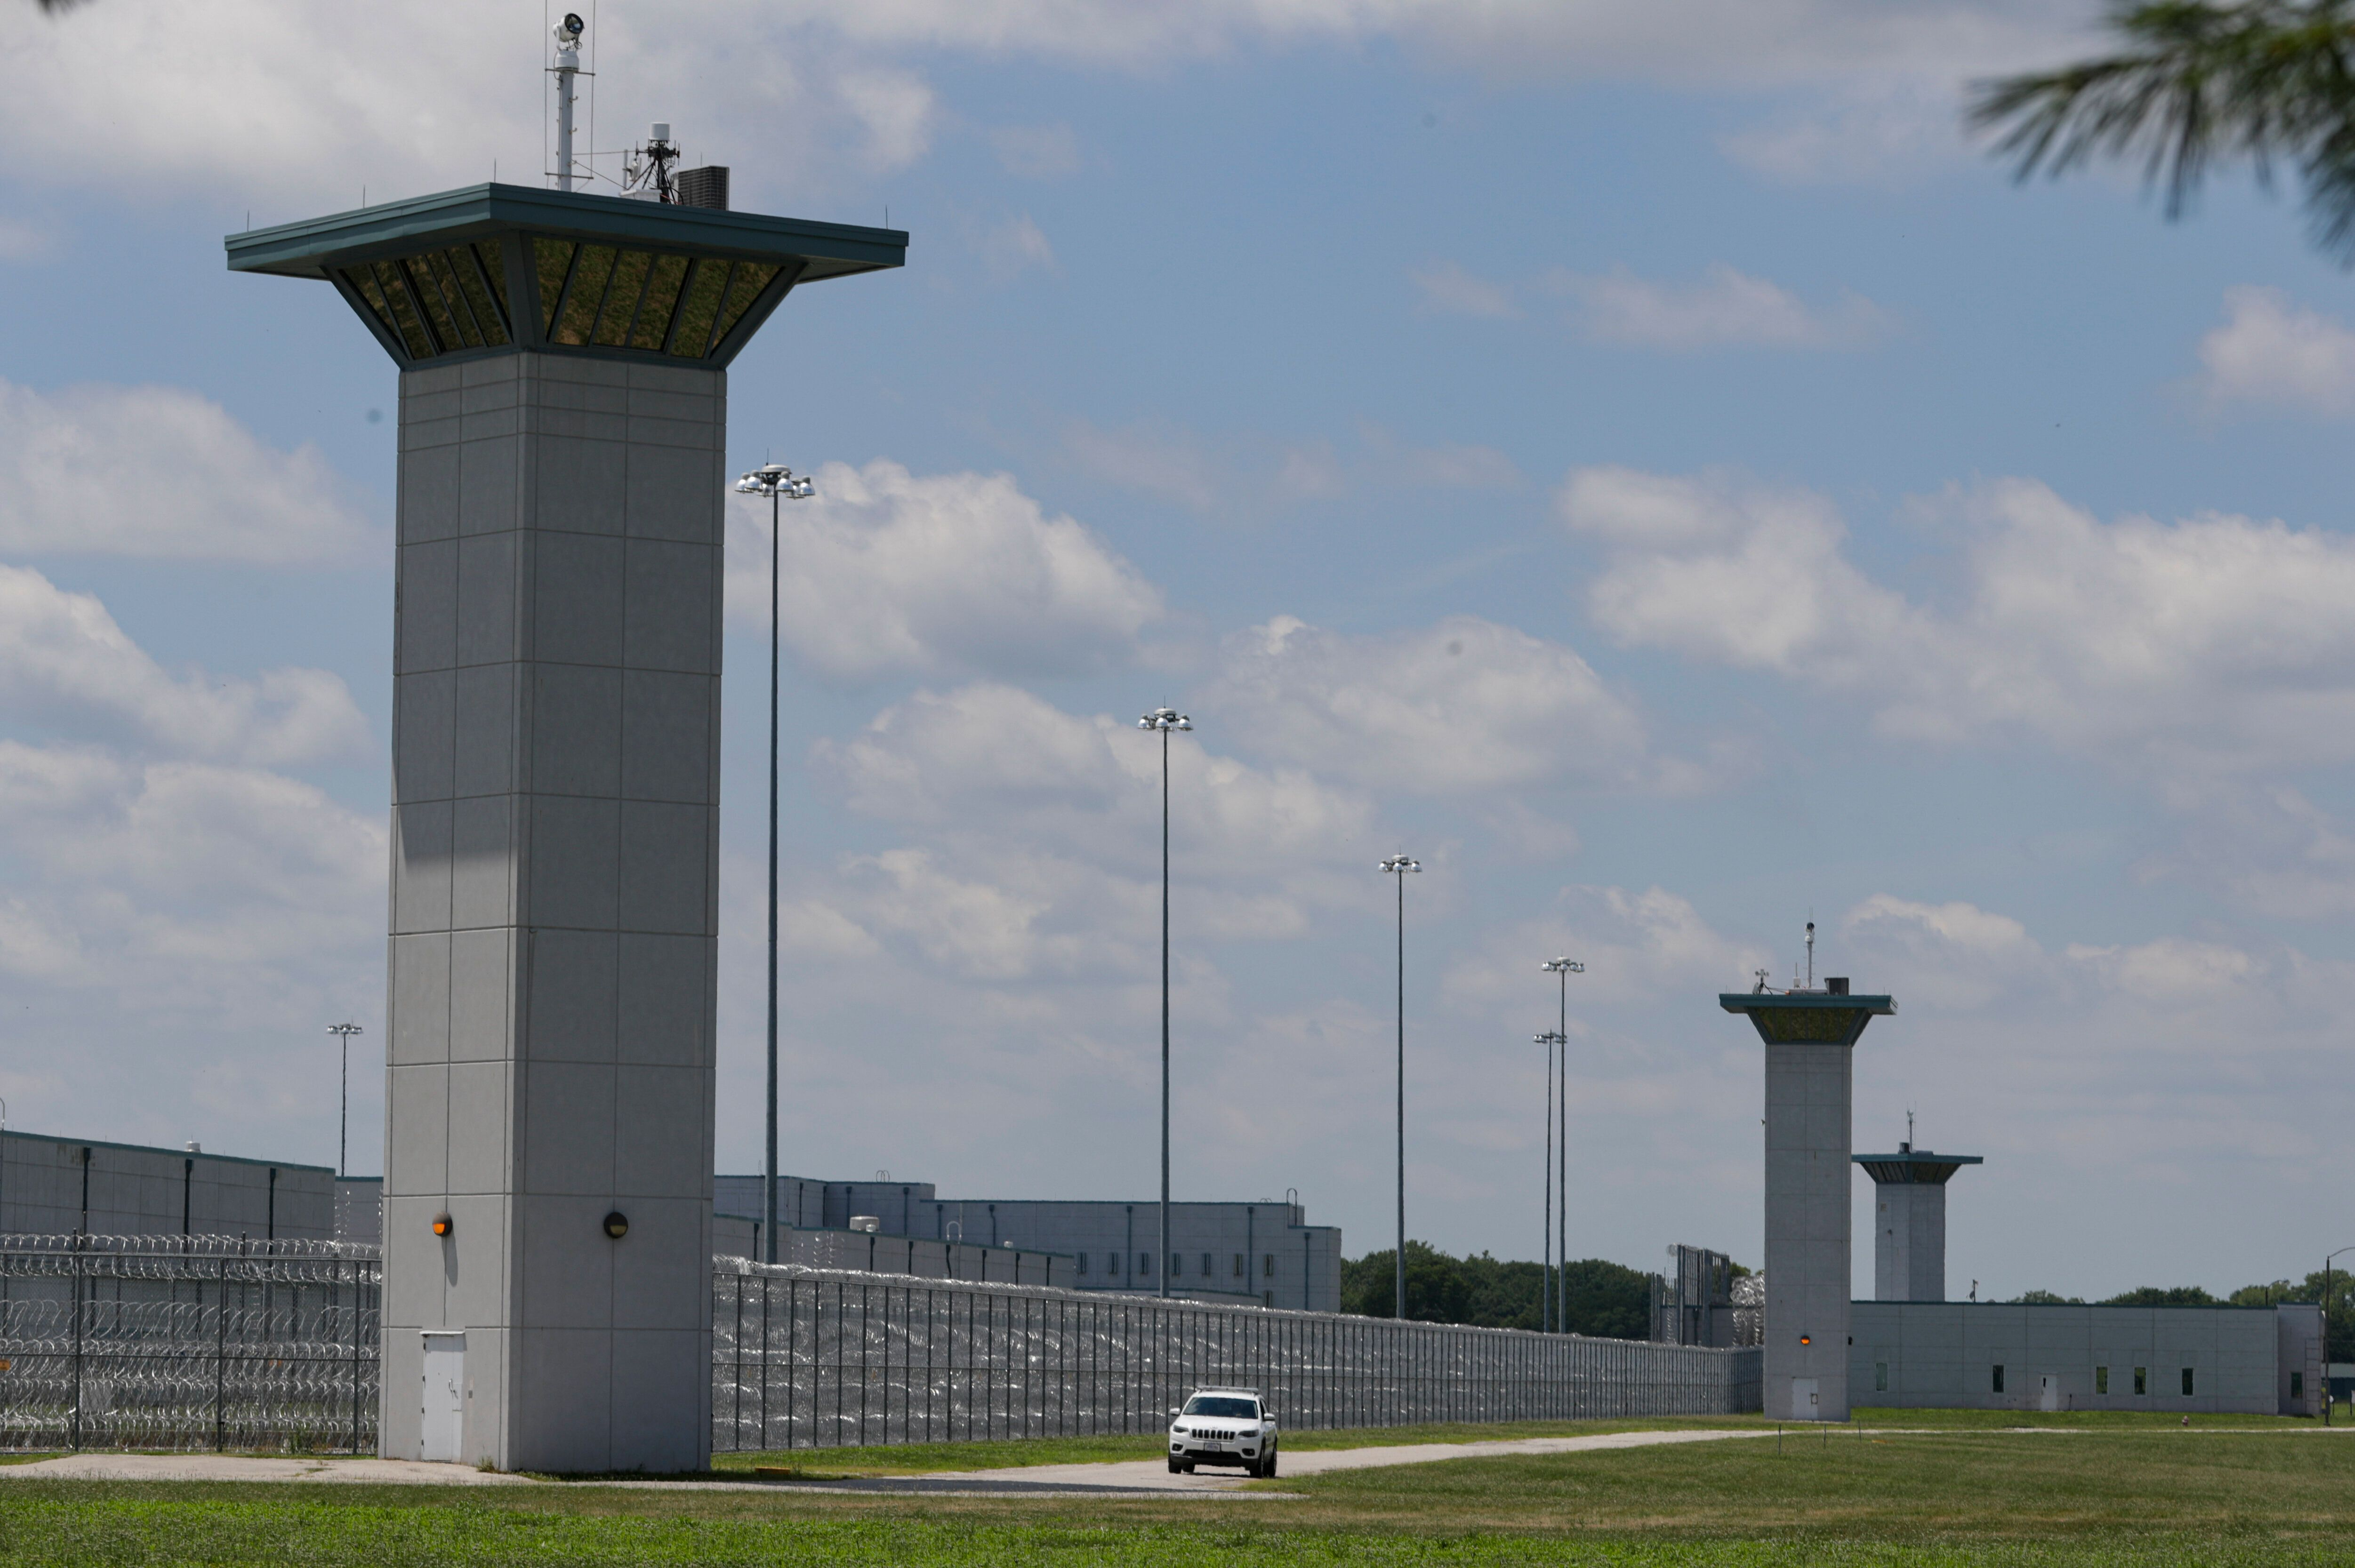 The federal prison complex in Terre Haute, Indiana, where federal executions take place.